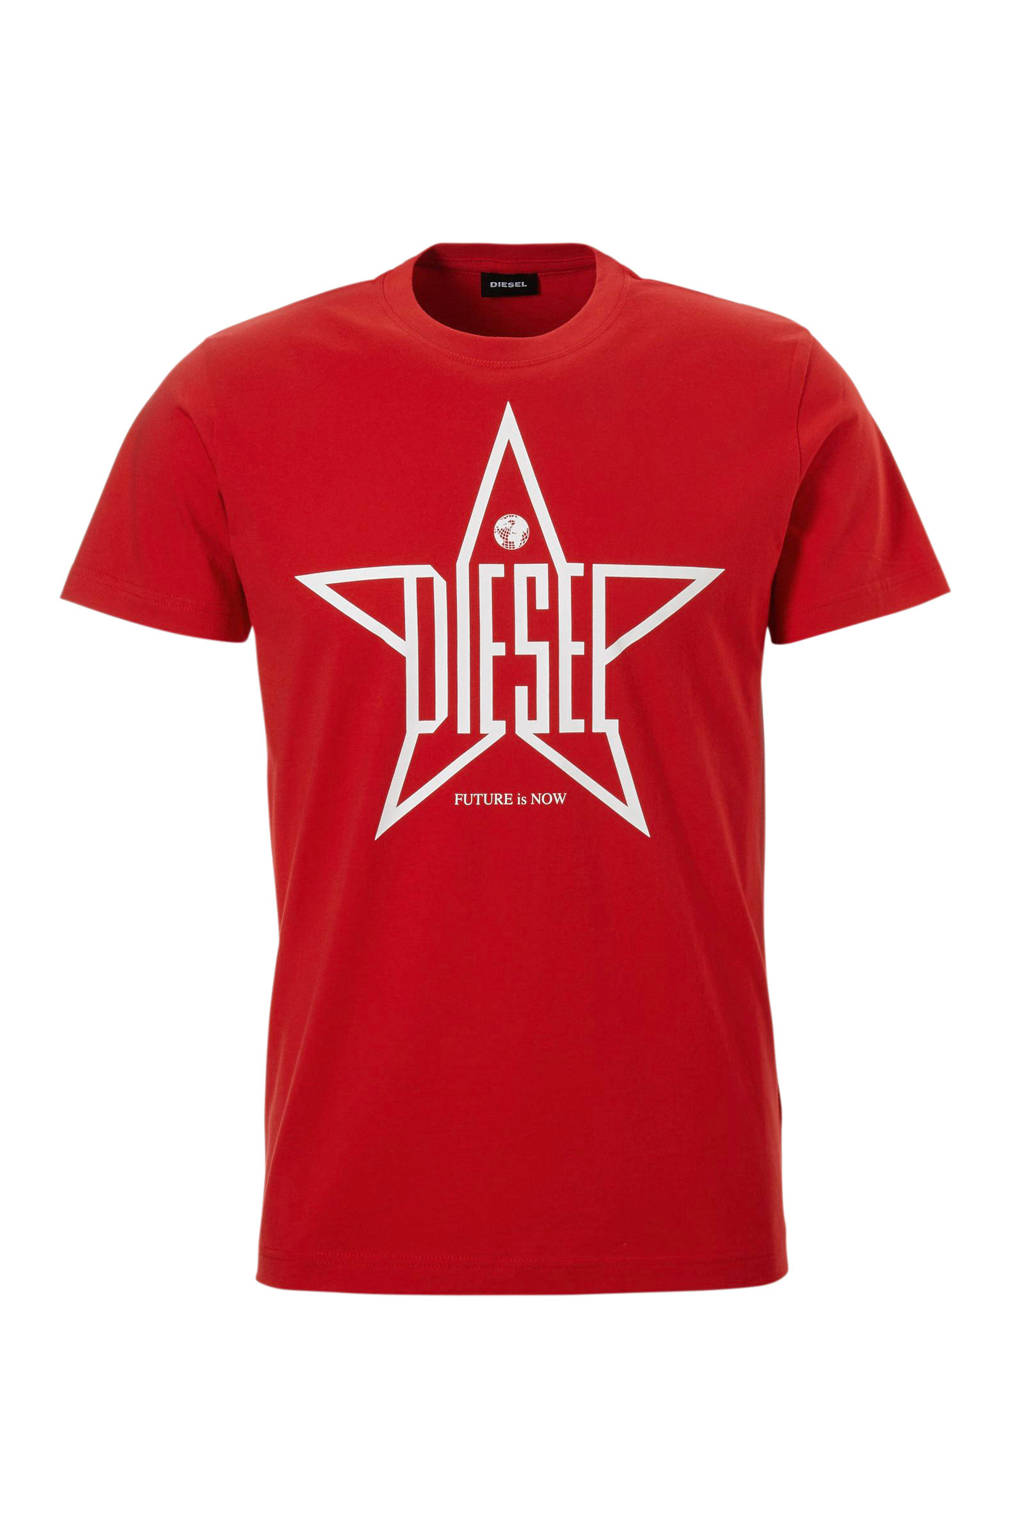 Diesel T-shirt, Rood/wit